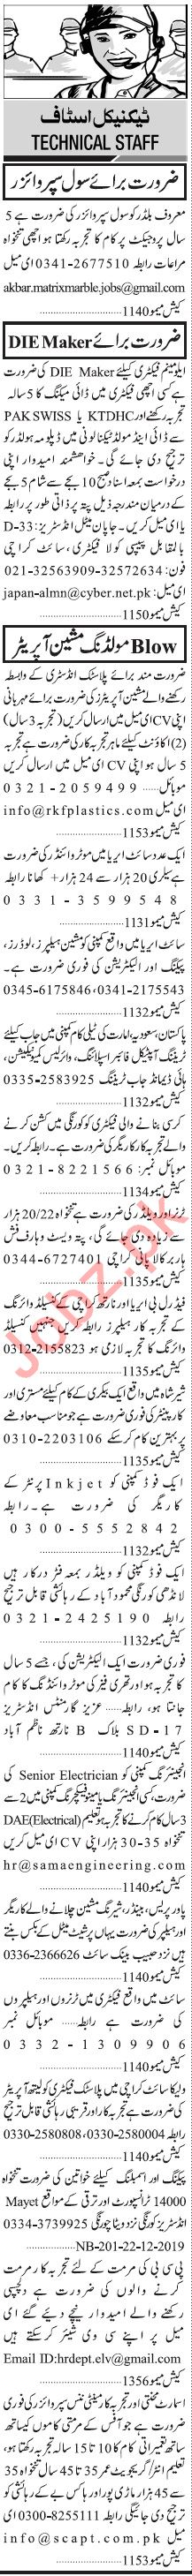 Jang Sunday Classified Ads 22 Dec 2019 for Technical Staff